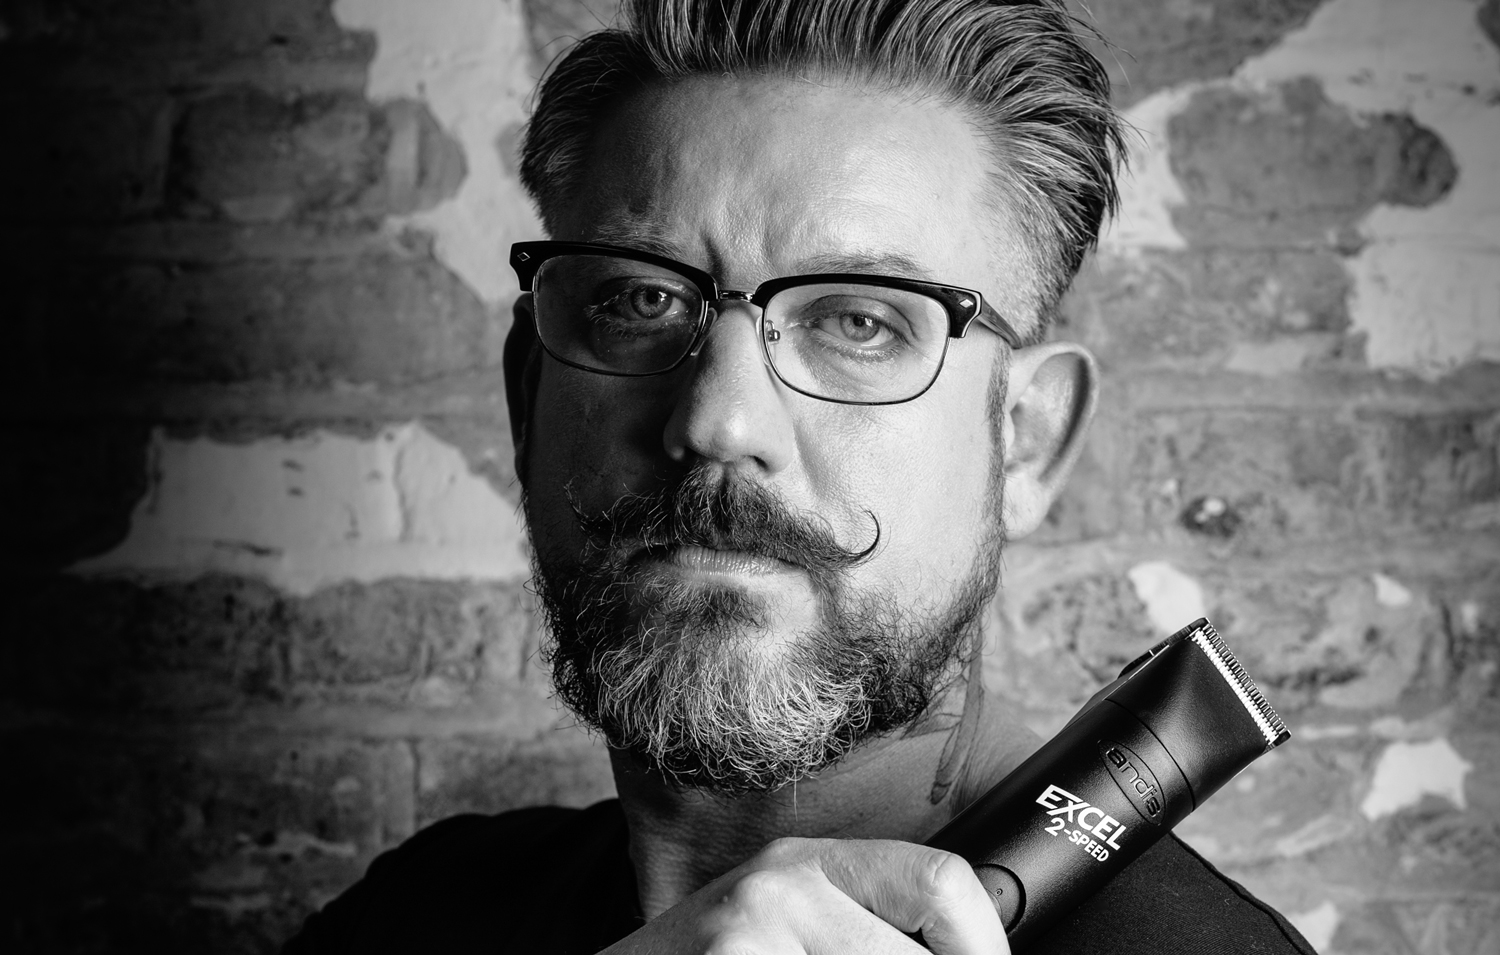 ANDIS COMPANY - Andis is the USA's leading manufacturer of clippers, trimmers and hand held tools for barbers and stylists. Andis is used by leading professionals in over 90 countries. Client since 2014.